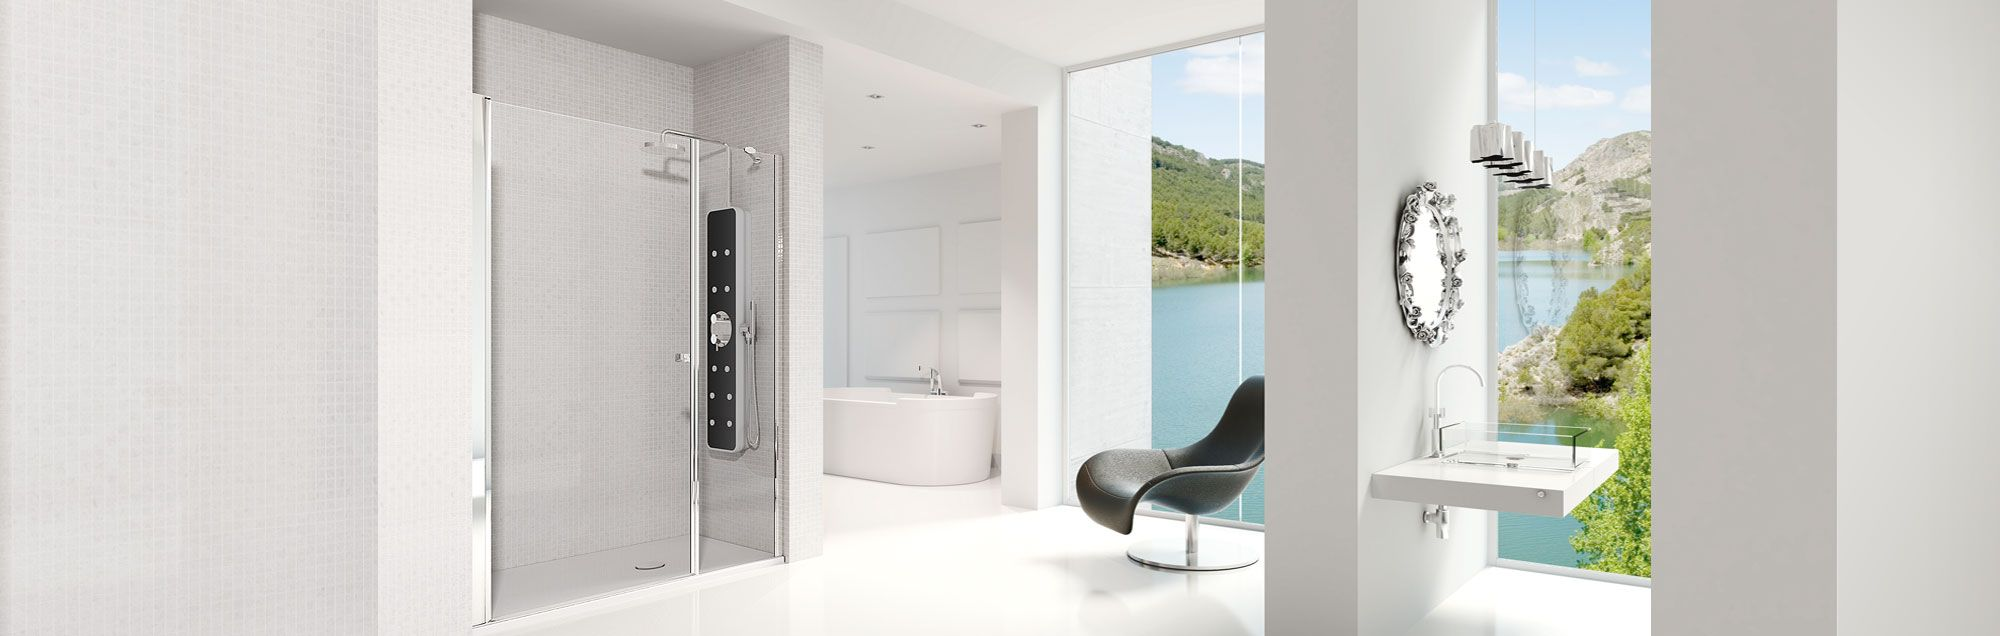 Arcoris Plus Collection swinging made to measure bathroom enclosures